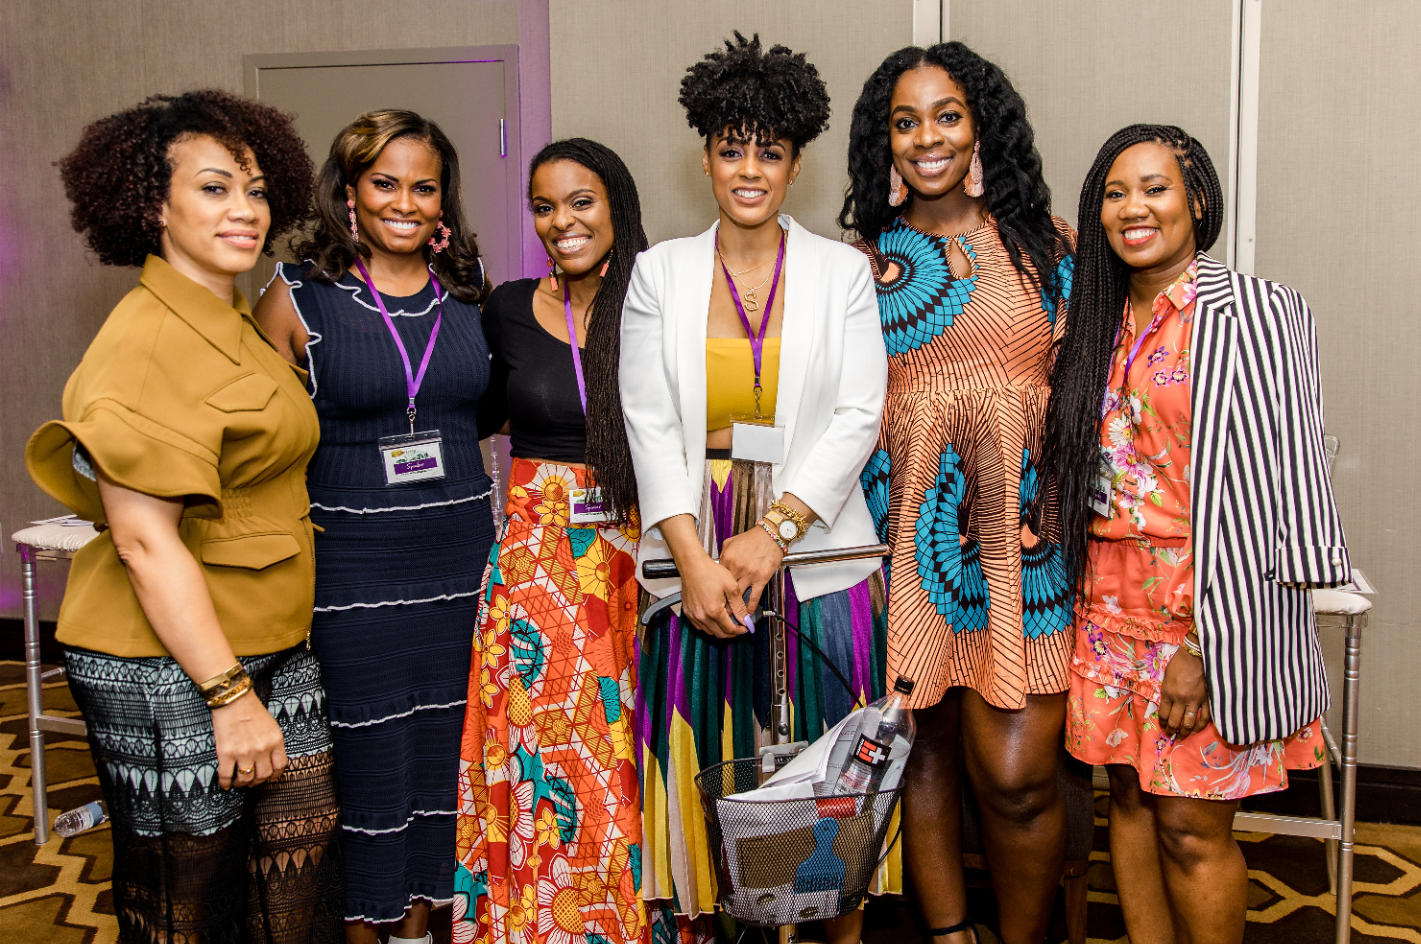 Mommy In The Streets Panelist (From left to right: Gabrielle Corney, Lynne Lightfoote, MD, Regina Tucker, Anowa Adjah, Mikaela Pabon) Photo Cred: Iris Mannings ( https://www.irismannings.com/)